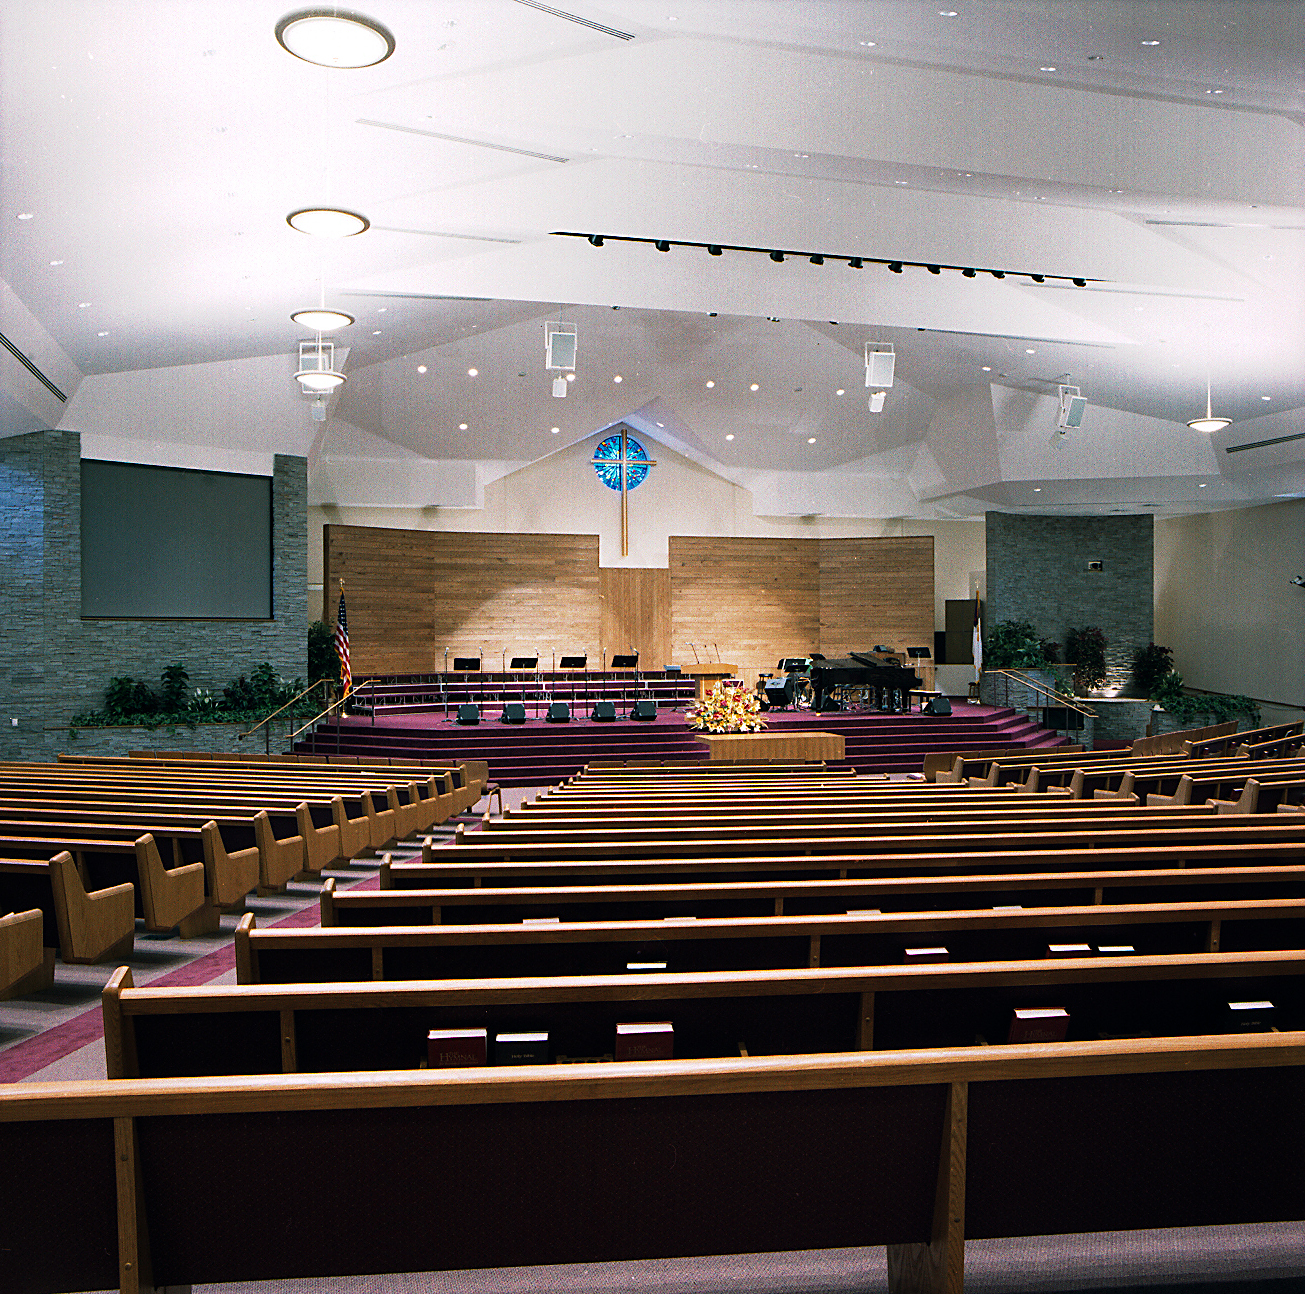 a more traditional evangelical congregation, loudonville community church nearalbany, ny wanted a space to accommodate both classical instruments and voice with natural (space) acoustics and amplified sound for contemporary worship. This900 seat space is equipped with State of the art Audio, video and lighting while preserving a more traditional 'church' appearance.